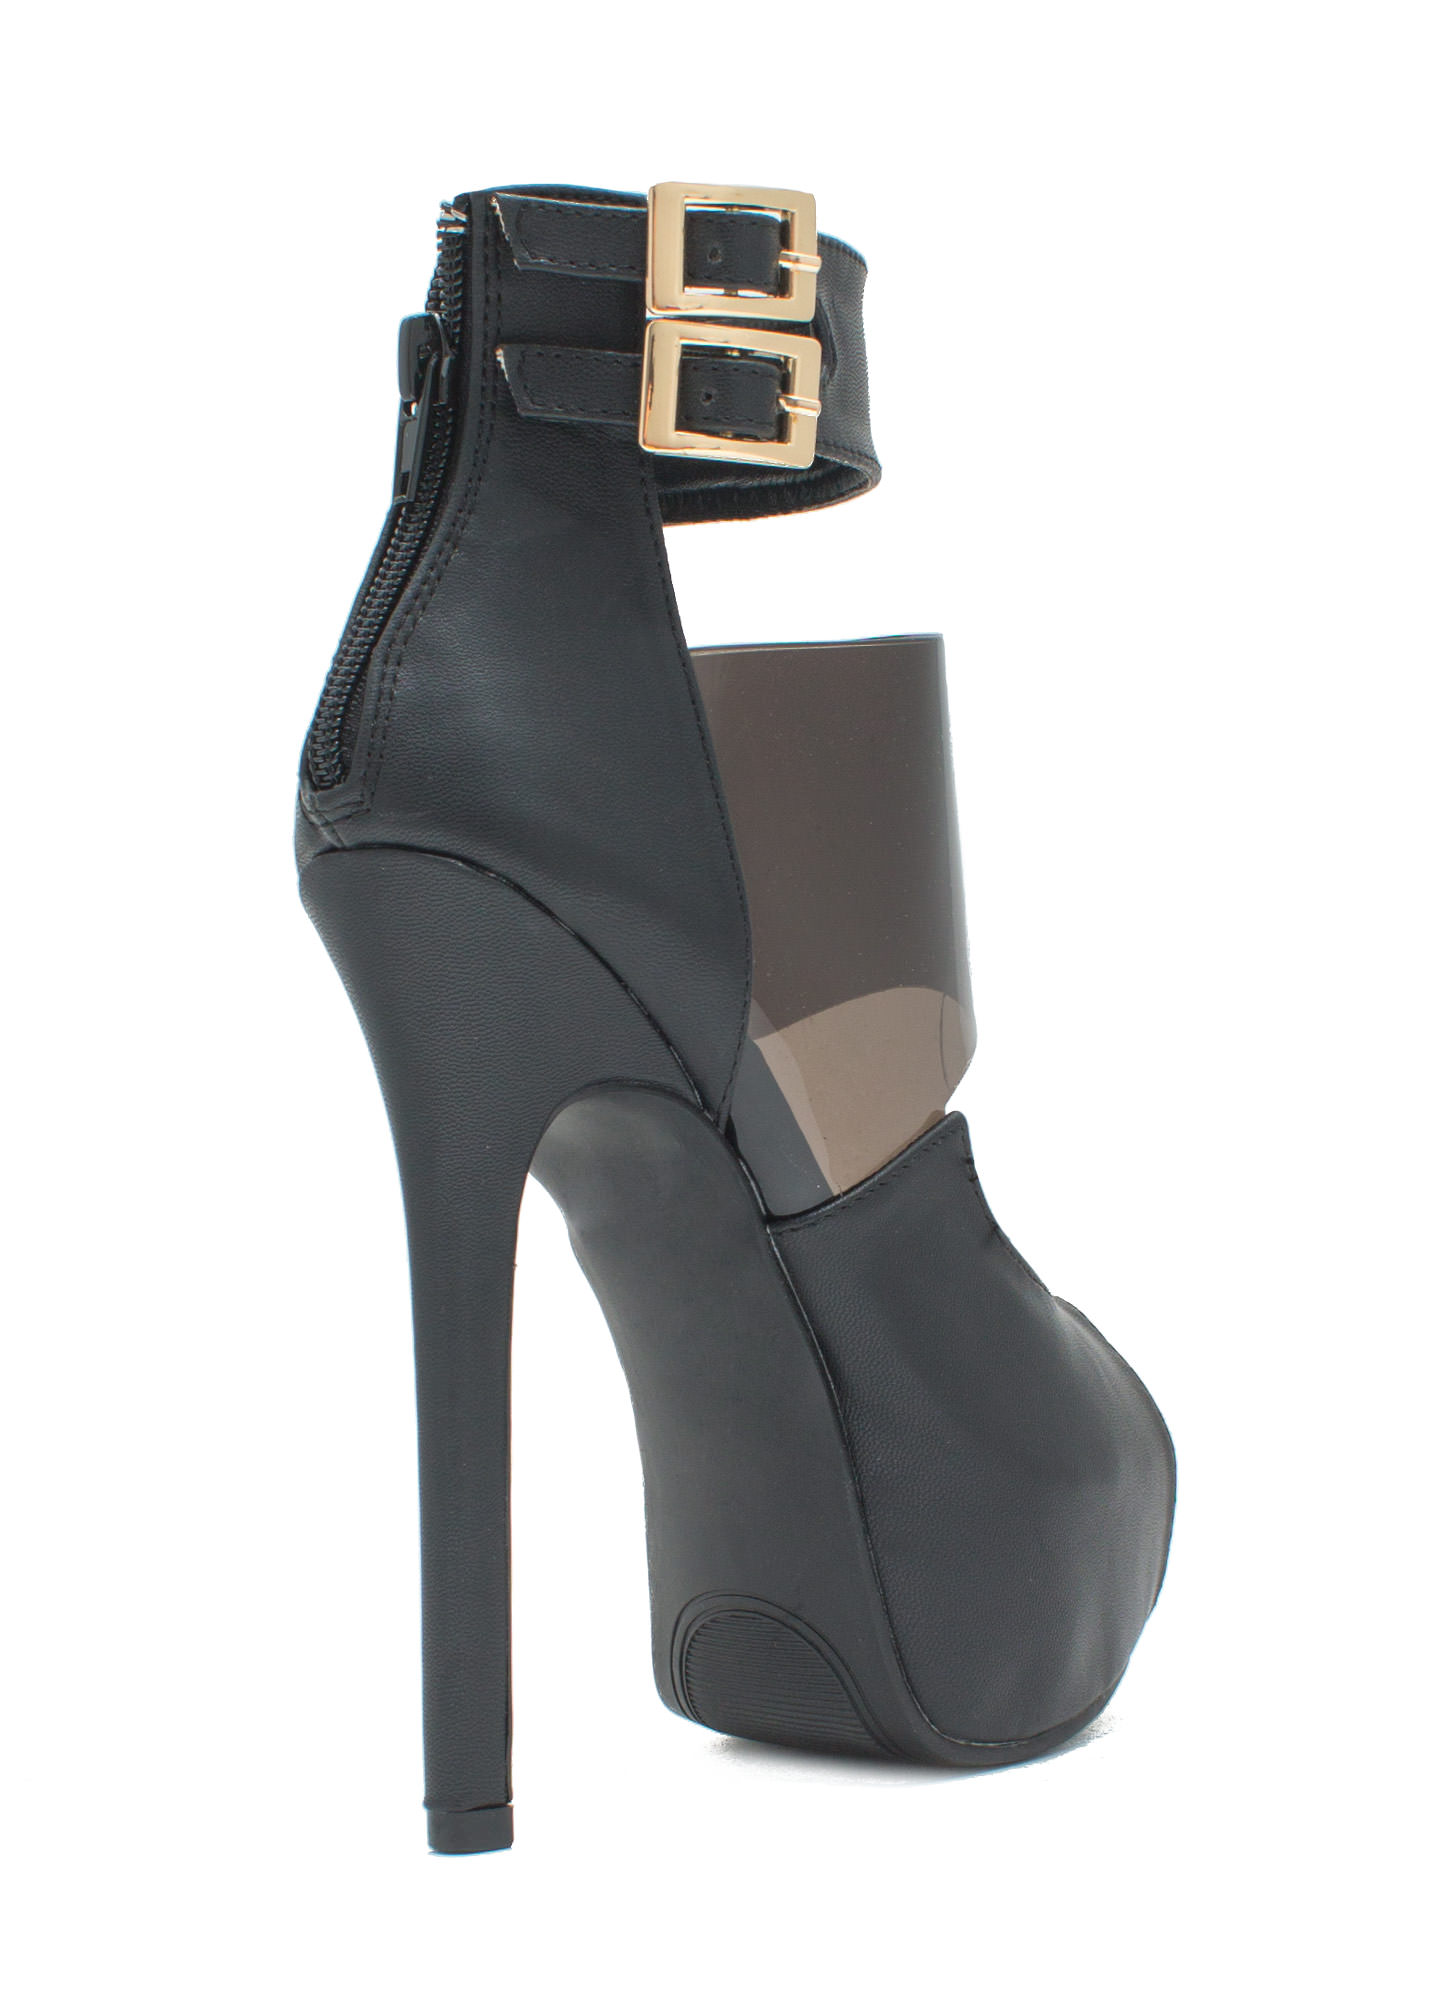 PVC You Soon In Peep-Toe Platforms BLACK